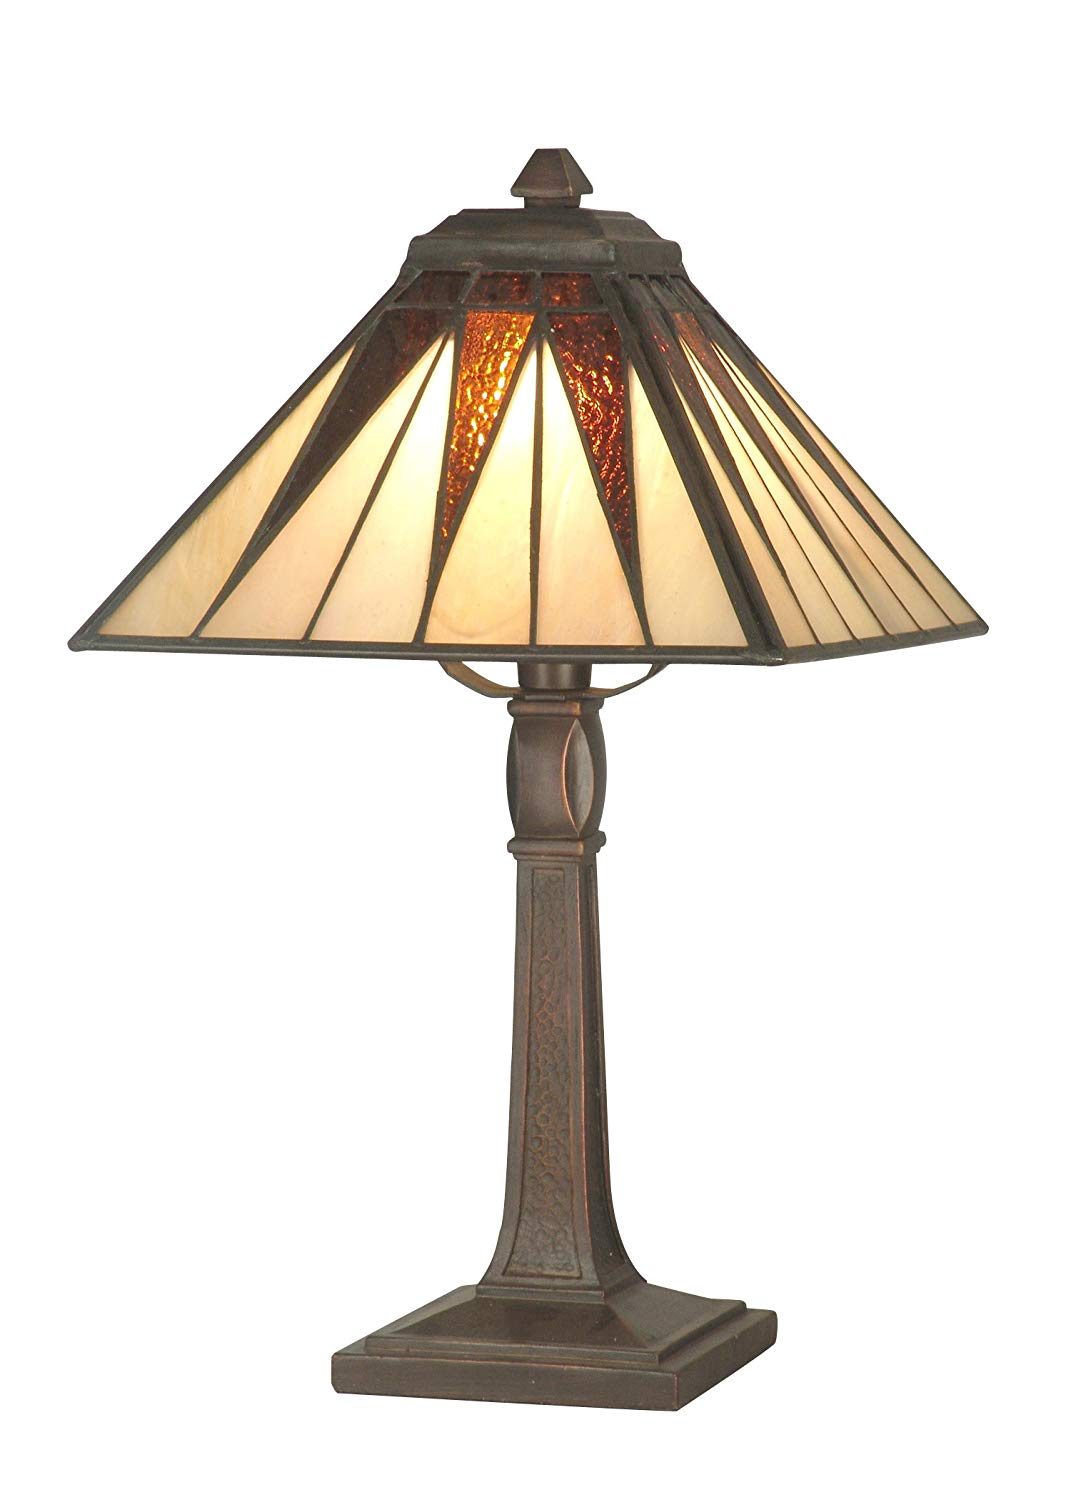 dale tiffany cooper accent lamp antique bronze and art table lamps glass shade cherry finish weathered grey end couch tray ikea short narrow coffee brown round pottery barn gold